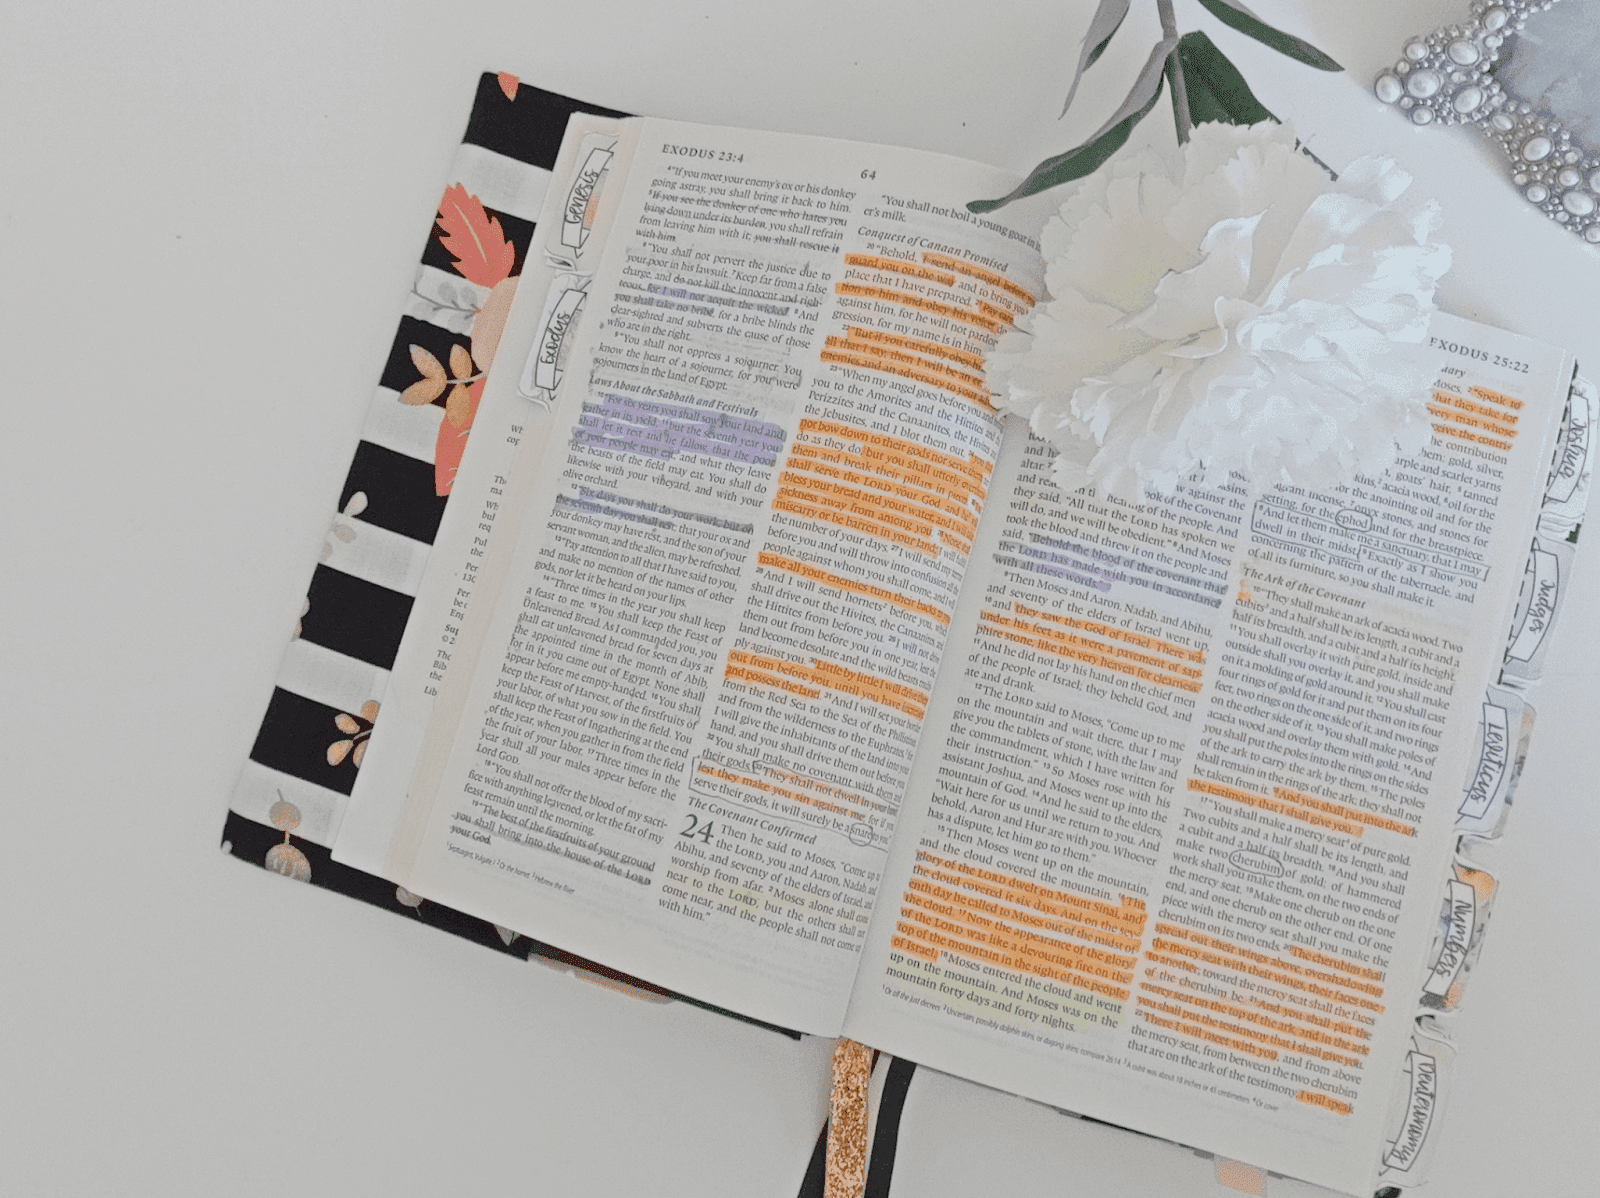 ible study plans | bible study printables | bible study reading plans | bible journaling tips | soap notebook | Soap bible study method | Bible study beginners | #biblestudy | #biblejournaling